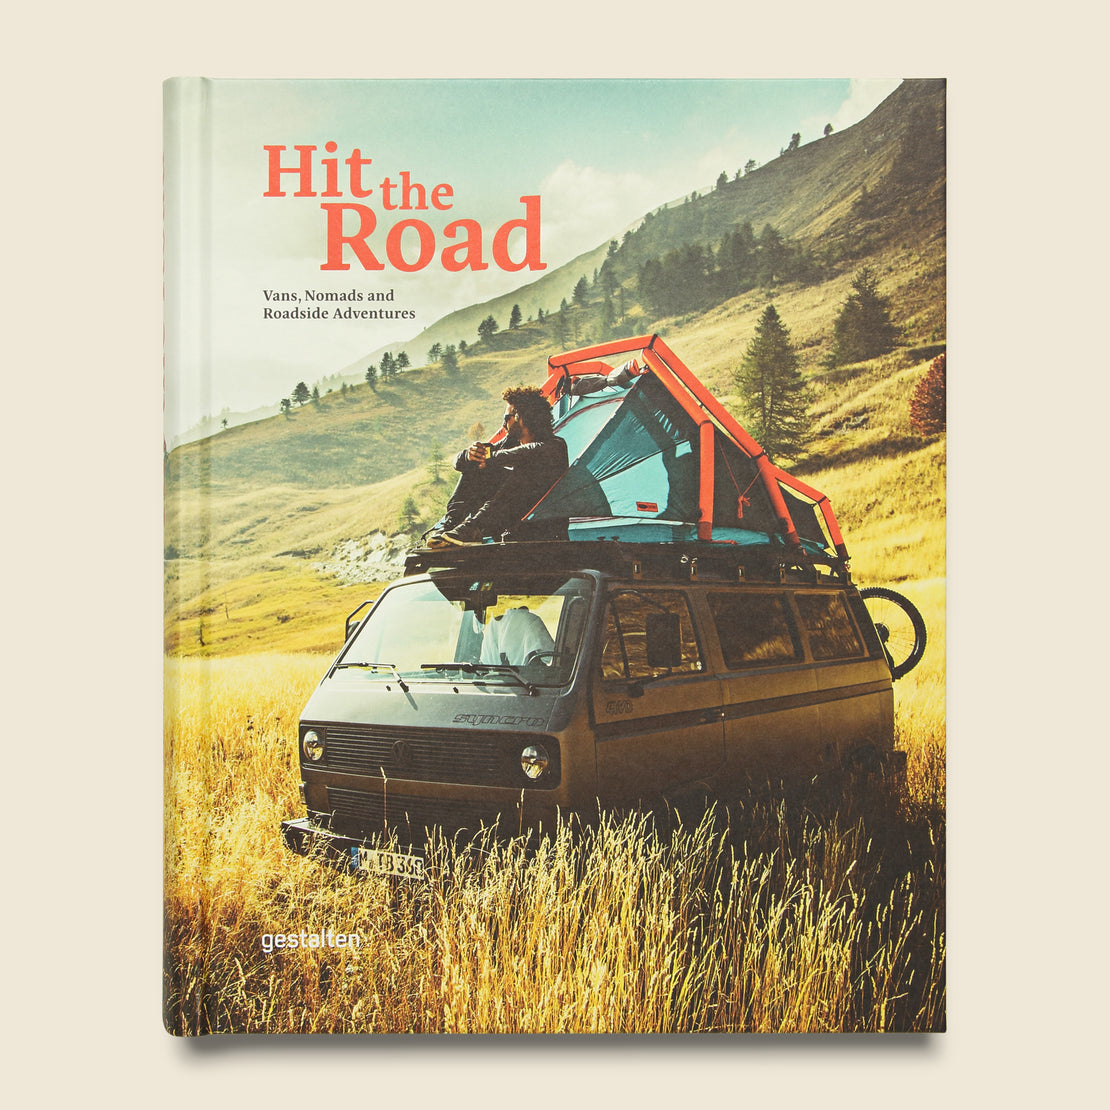 Bookstore Hit the Road: Vans, Nomads and Roadside Adventures - Gestalten